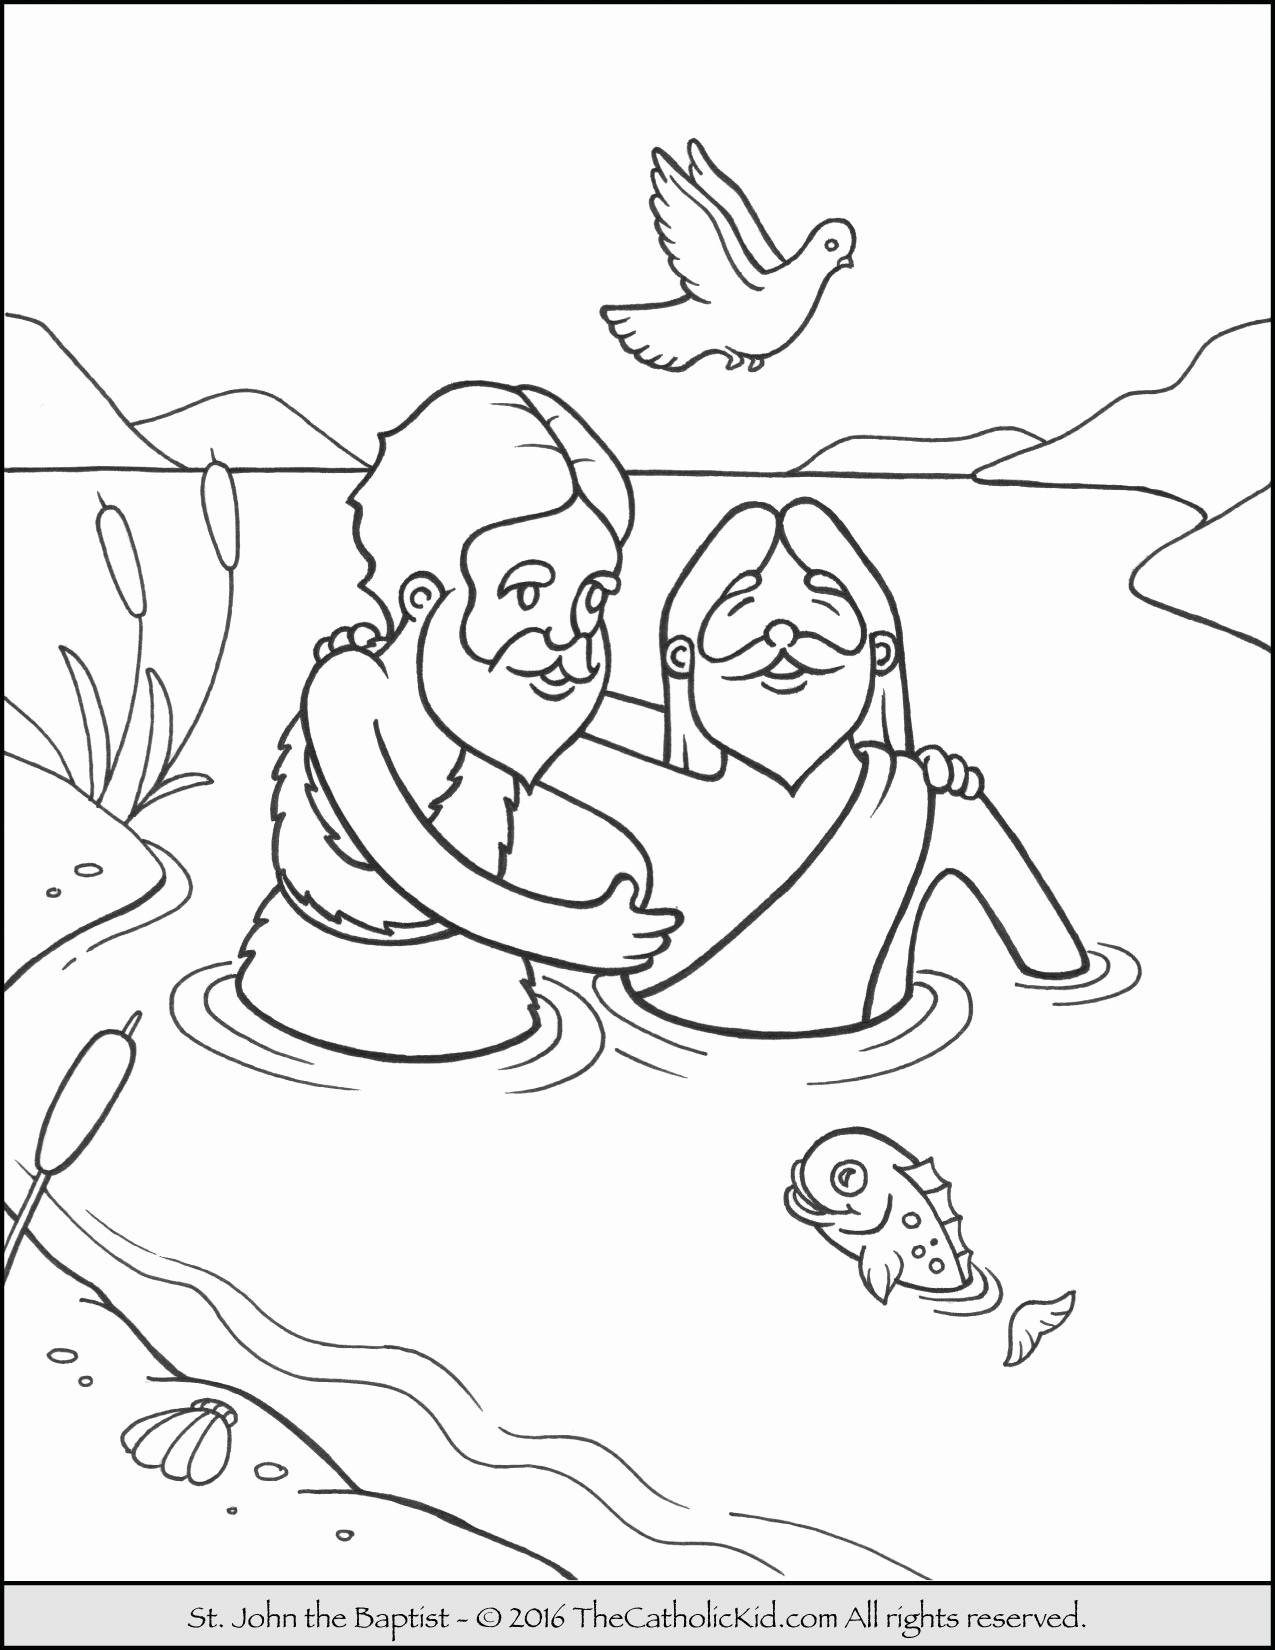 st francis xavier coloring page st francis xavier coloring page coloring page xavier st francis